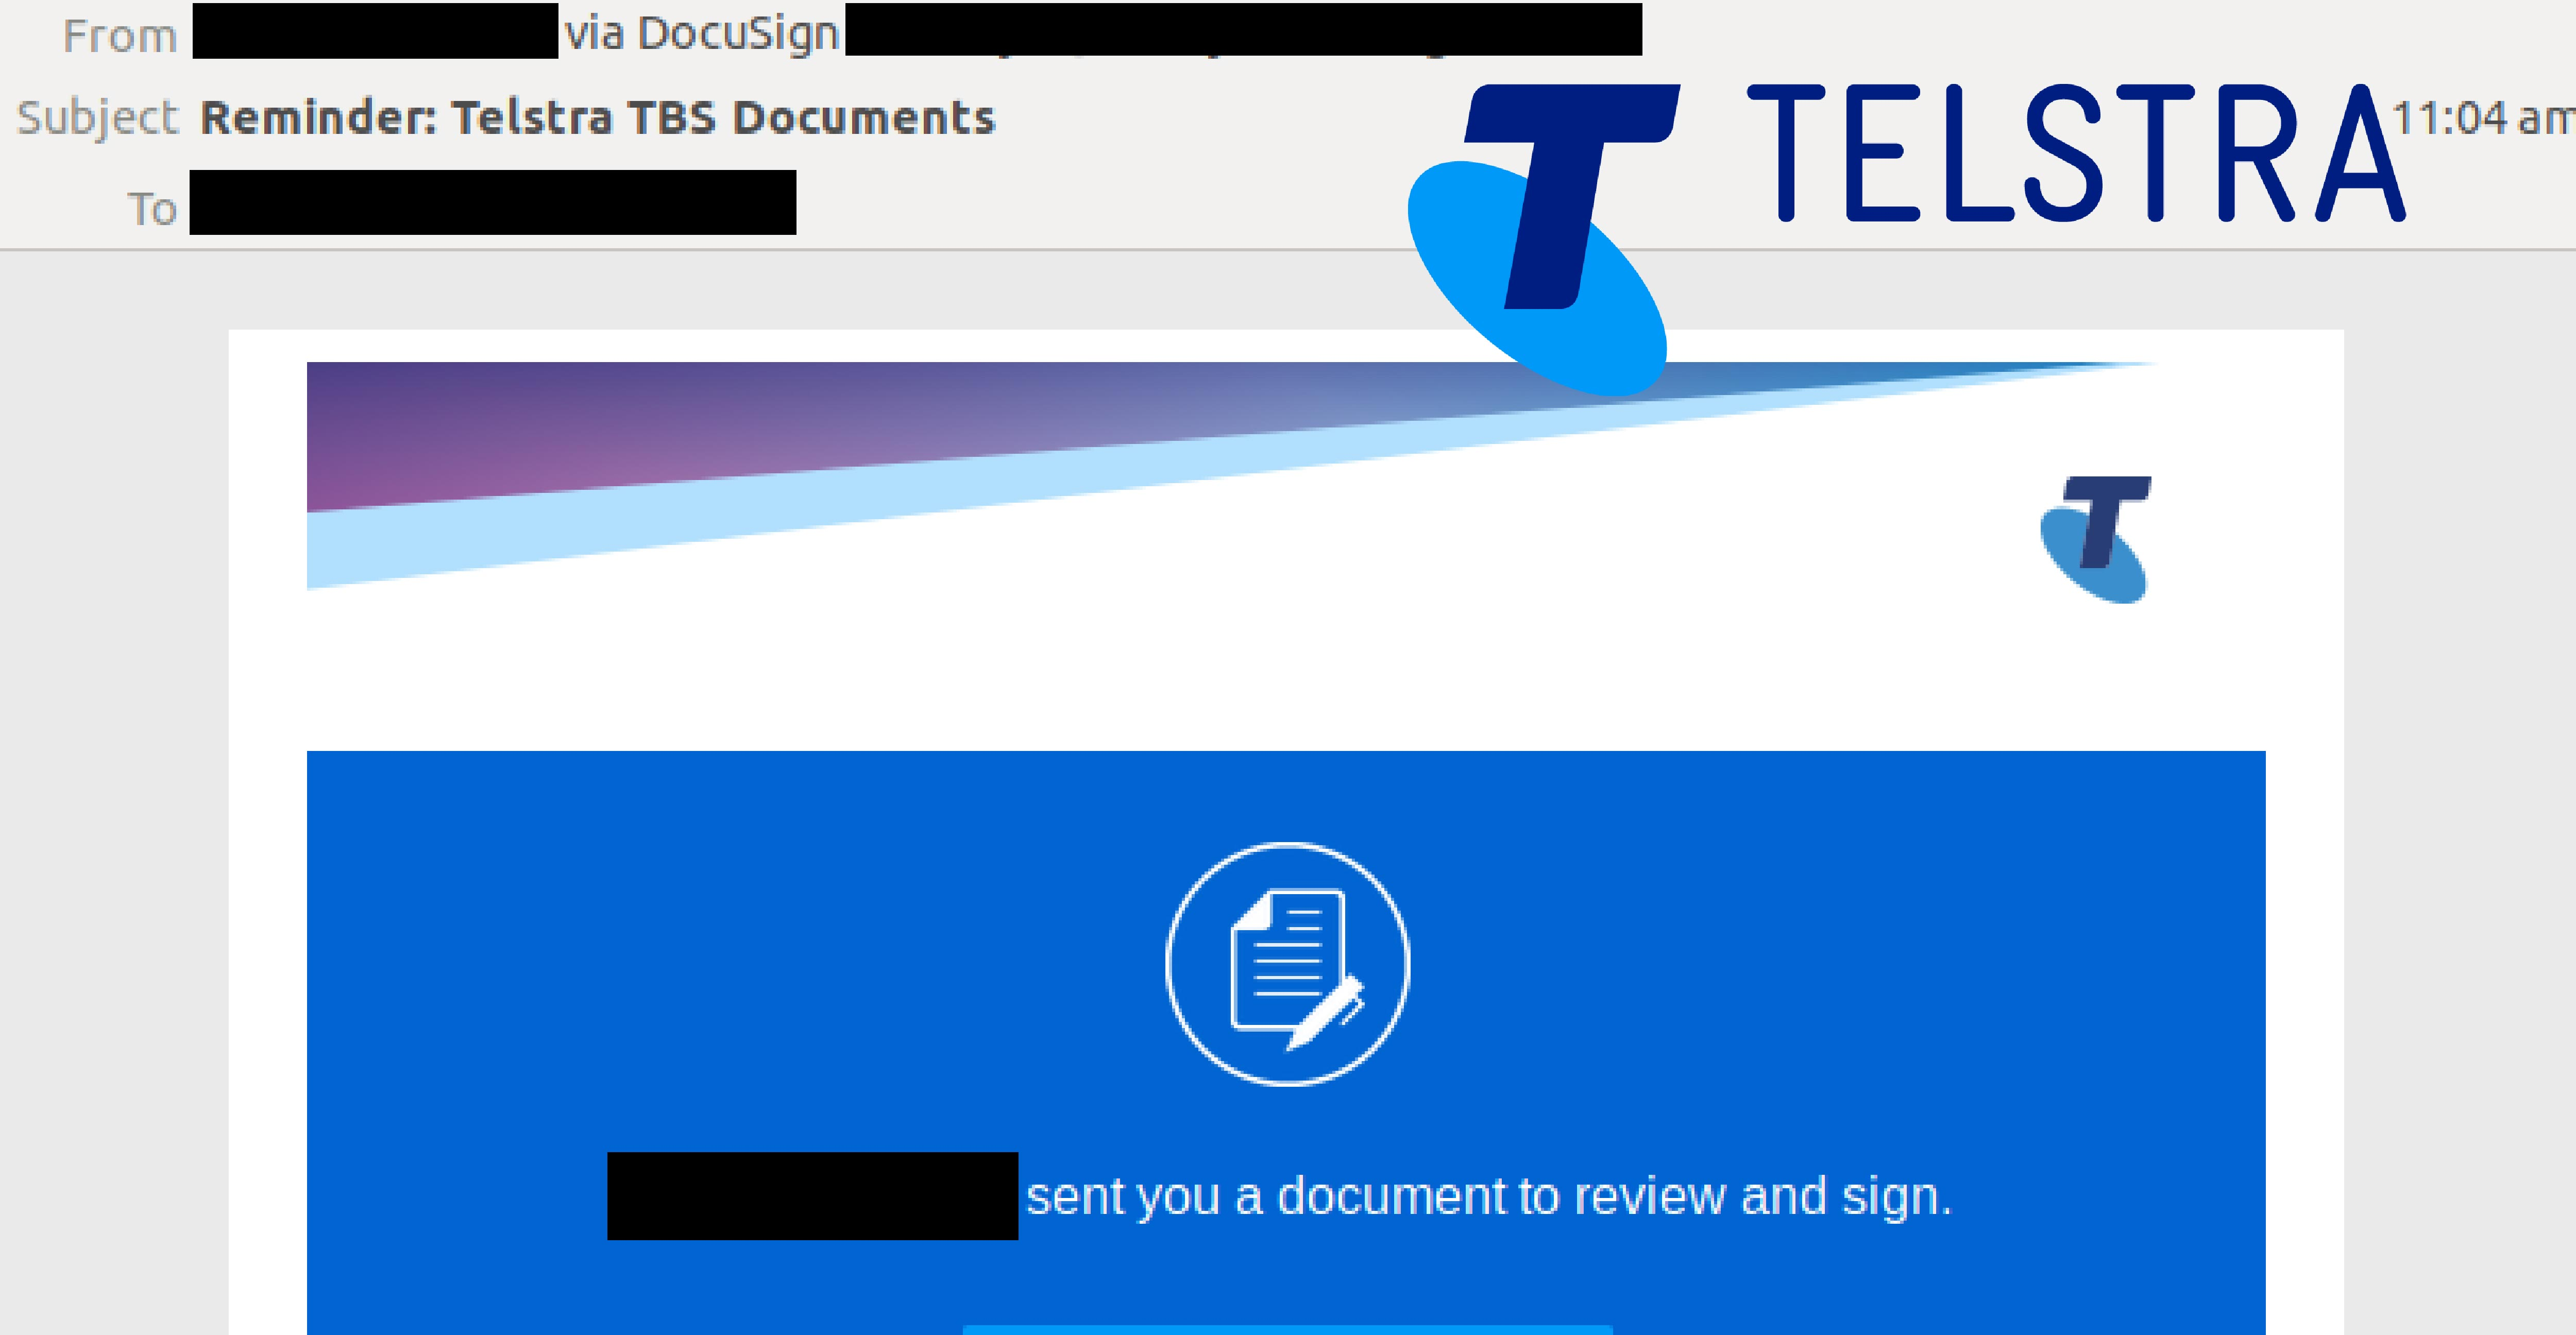 Telstra Email Scam 220119